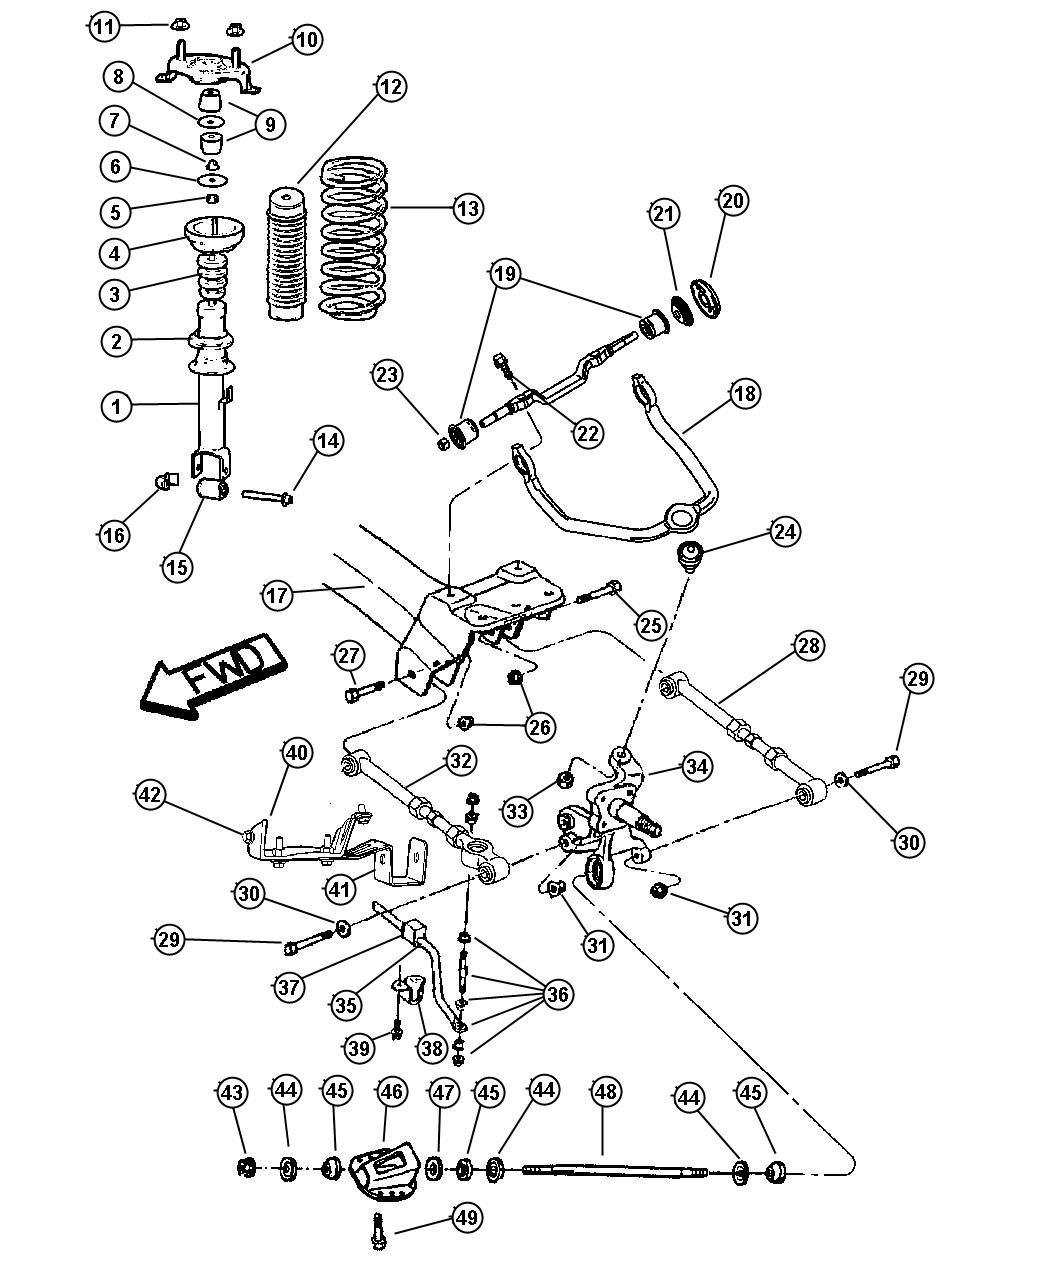 Np246 Transfer Case Wiring Diagram. np 246 transfer case